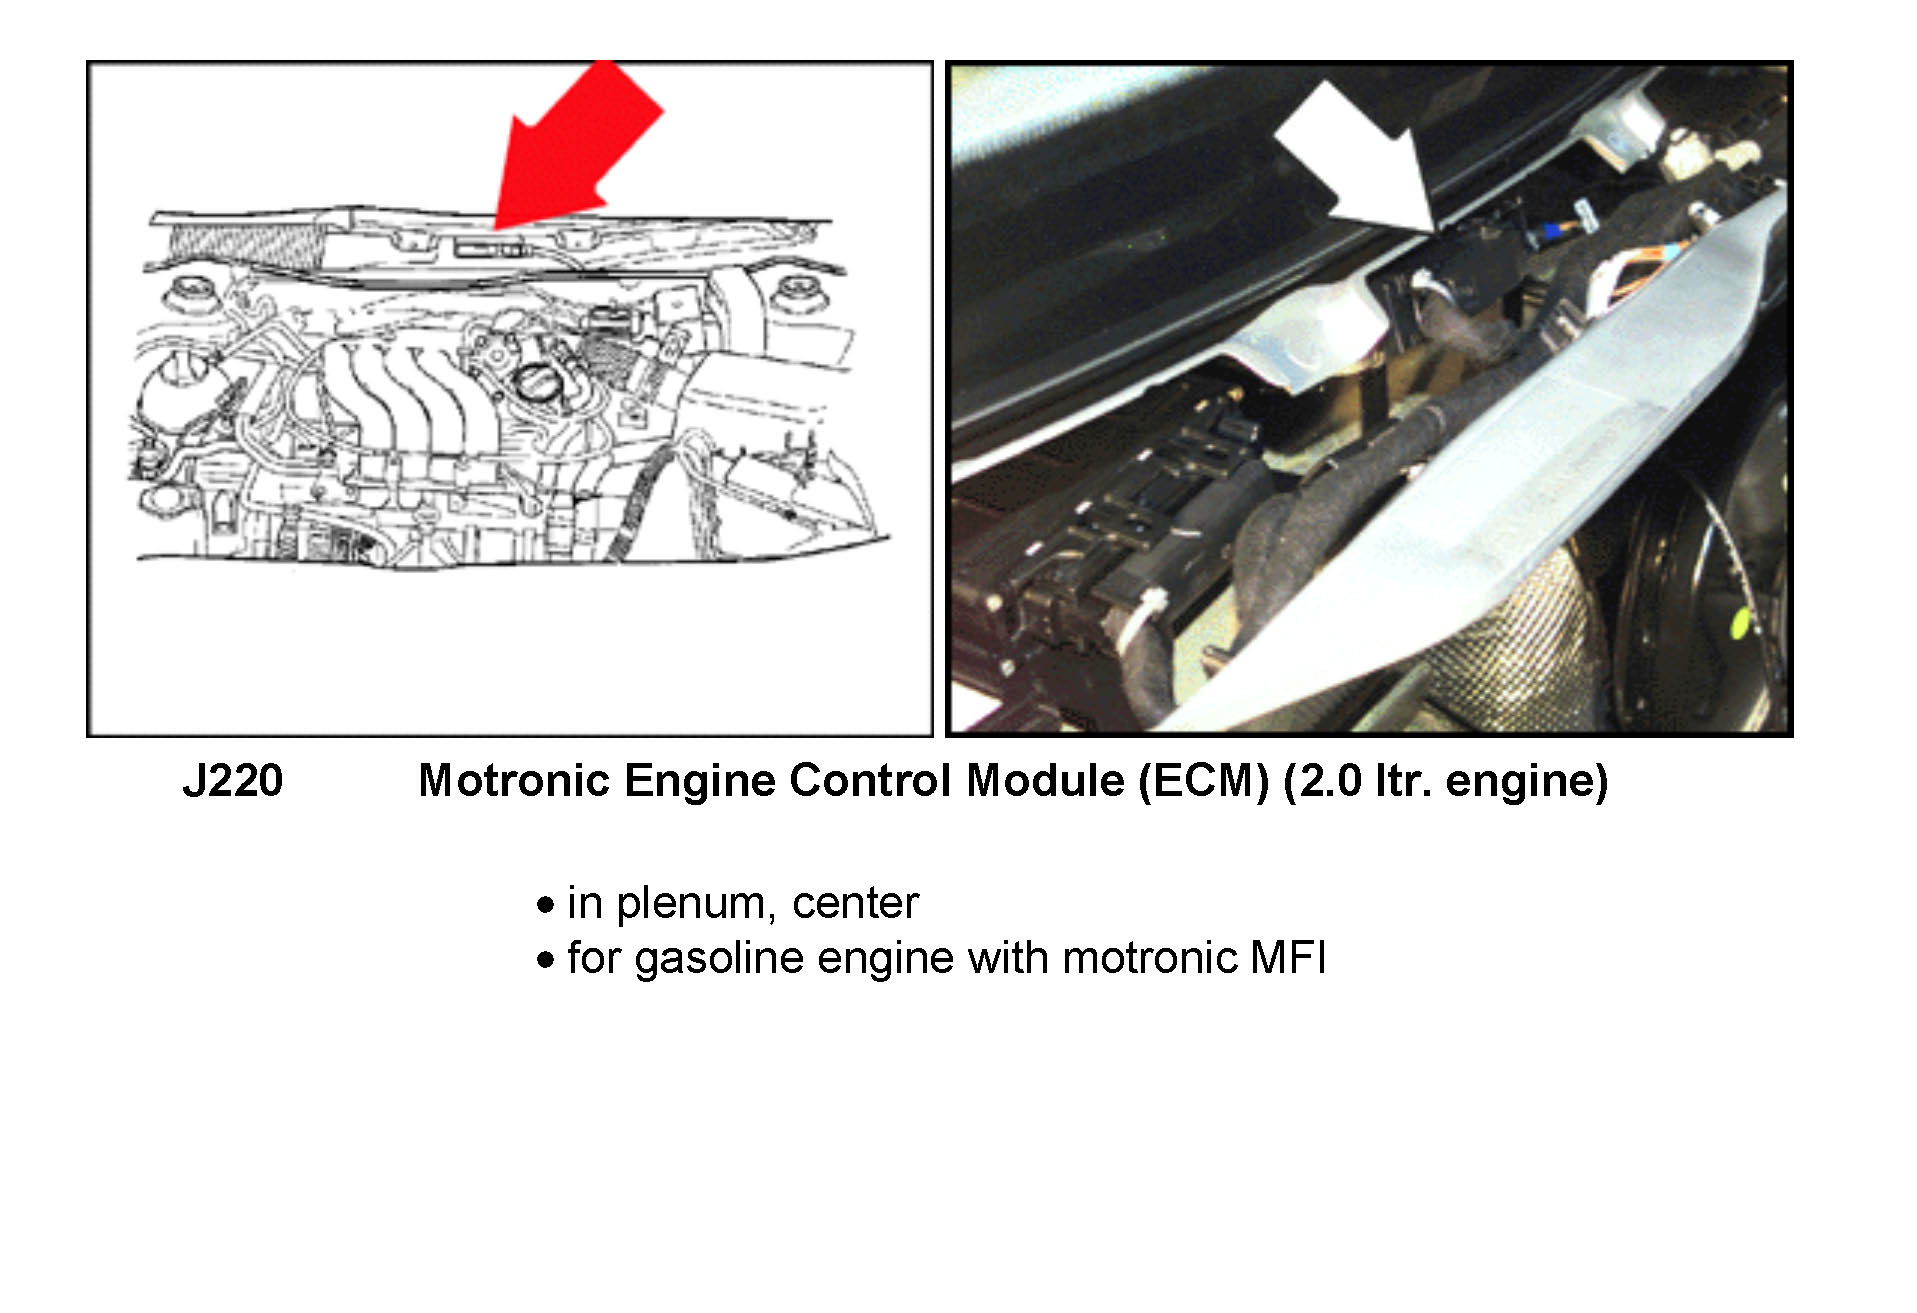 I Have A 2003 Vw Jetta With 20 Engine Cranks But Will Not Start 03 2 0 Diagram 1147b845 1396 46da 8937 97189739b994 Vwecm